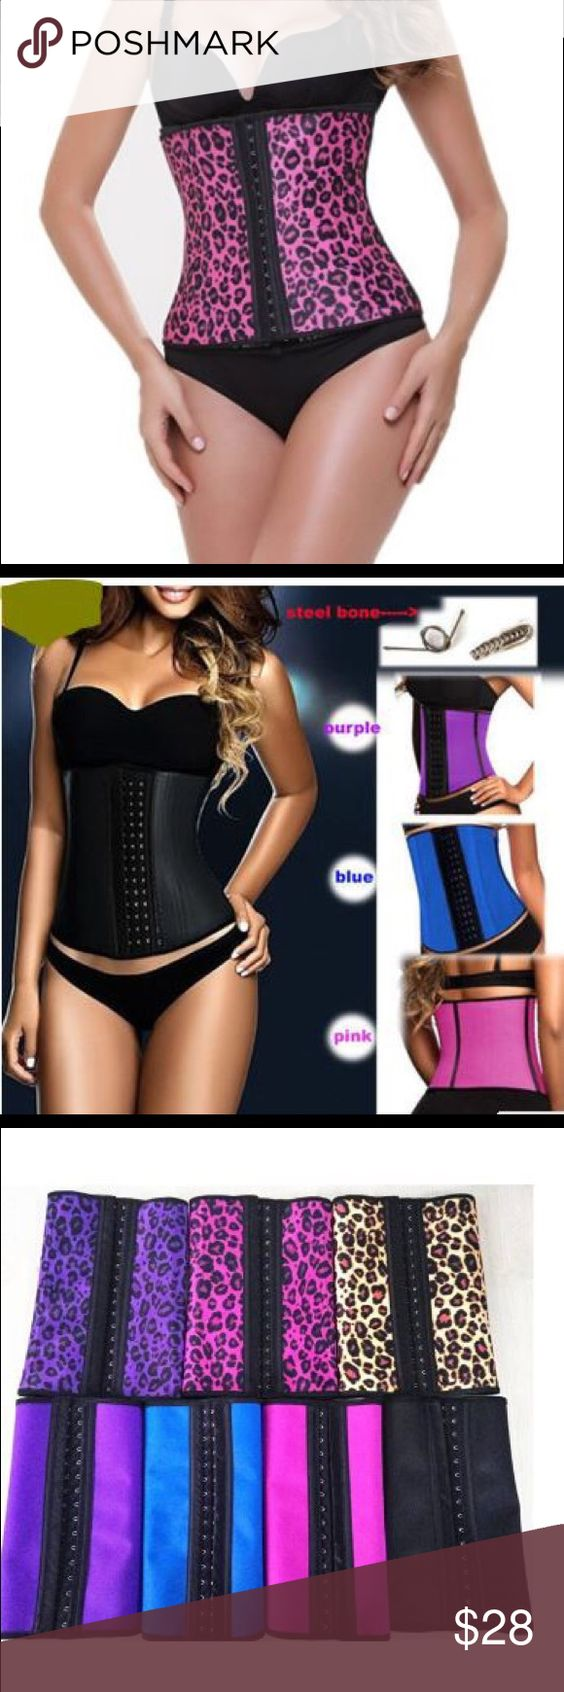 PINK ANIMAL PRINT STEEL BONED LATEX WAIST TRAINER FUNCTION: KEEP INCREASING BLOOD FLOW  PROMOTING WEIGHT LOSS. YES. Our latex waist trainer will provide a heat promoting environment for your body to increase your blood flow. It will promote your WEIGHT LOSS whenever in workout or working. the vest matching cinchers are better for your weight loss plan. FULLY STAND BY OUR CORSETS: We accept FULL REFUND if our waist cinchers with quality problem absolutely. And simply EXCHANGE in size. A…